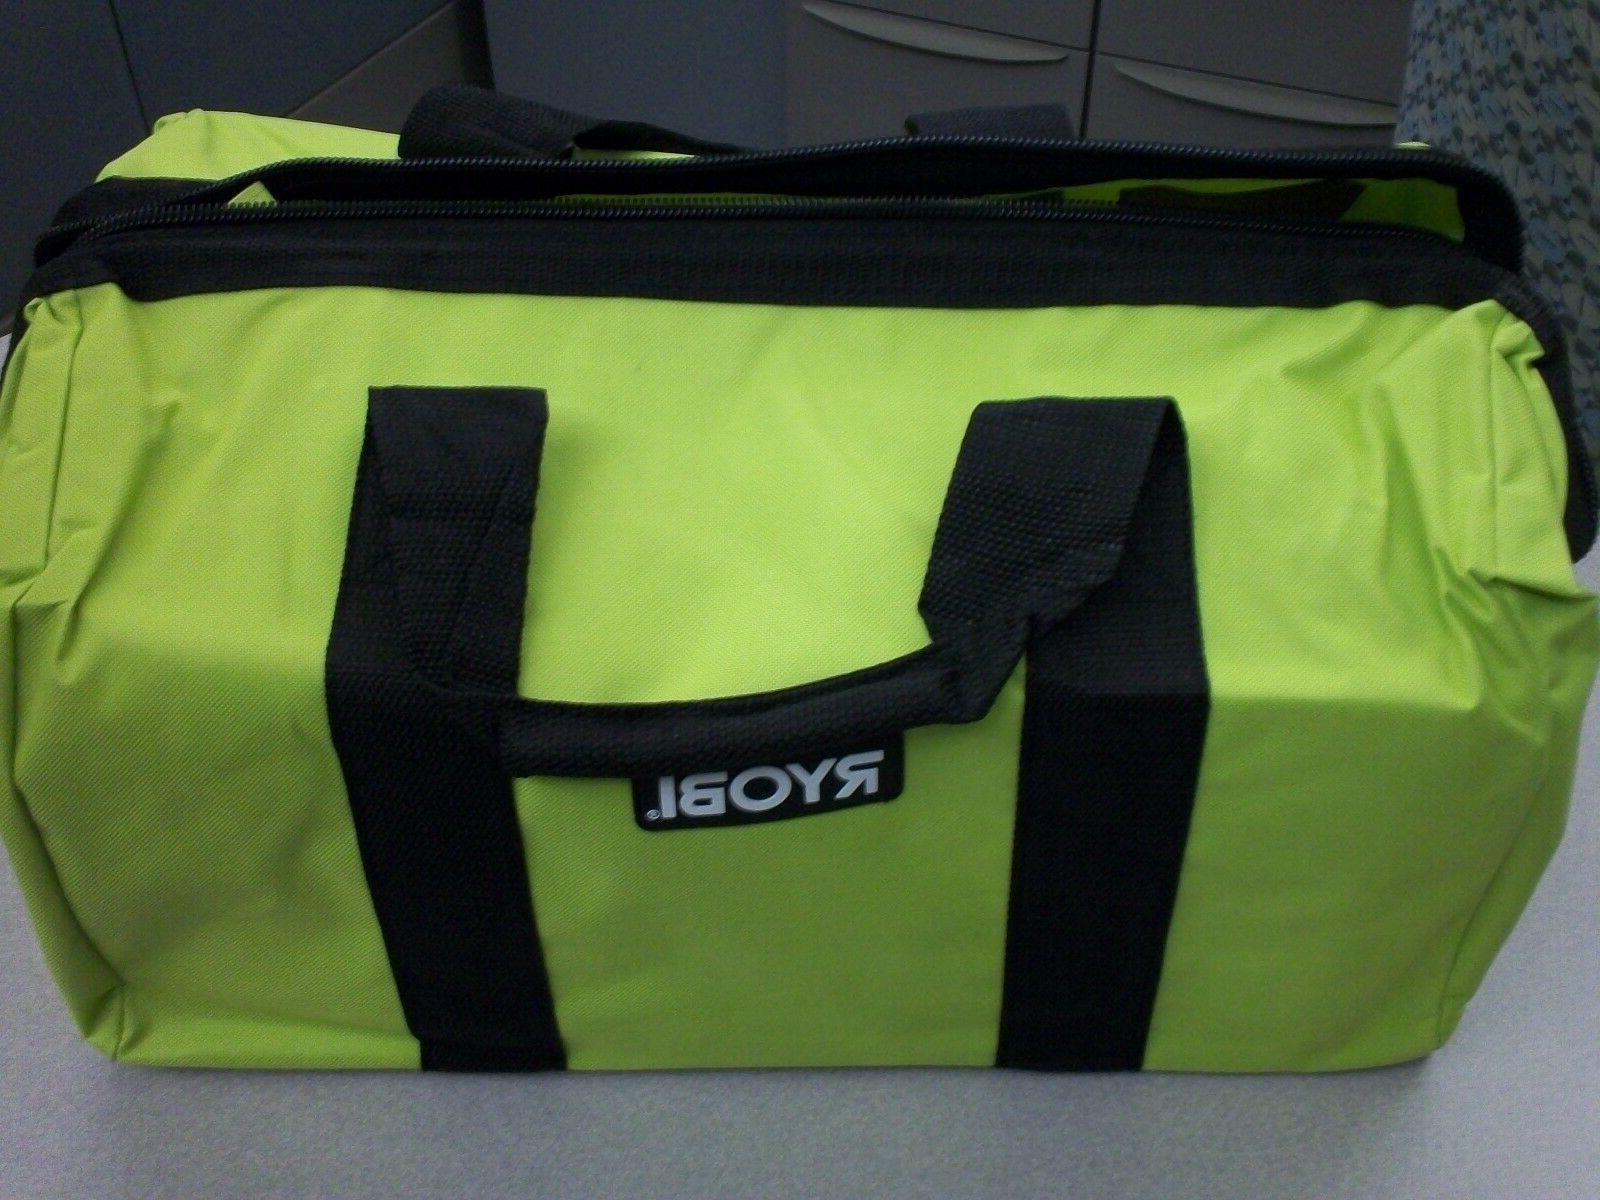 Ryobi One Contractors Canvas Green Wide-Mouth Tool Bag...